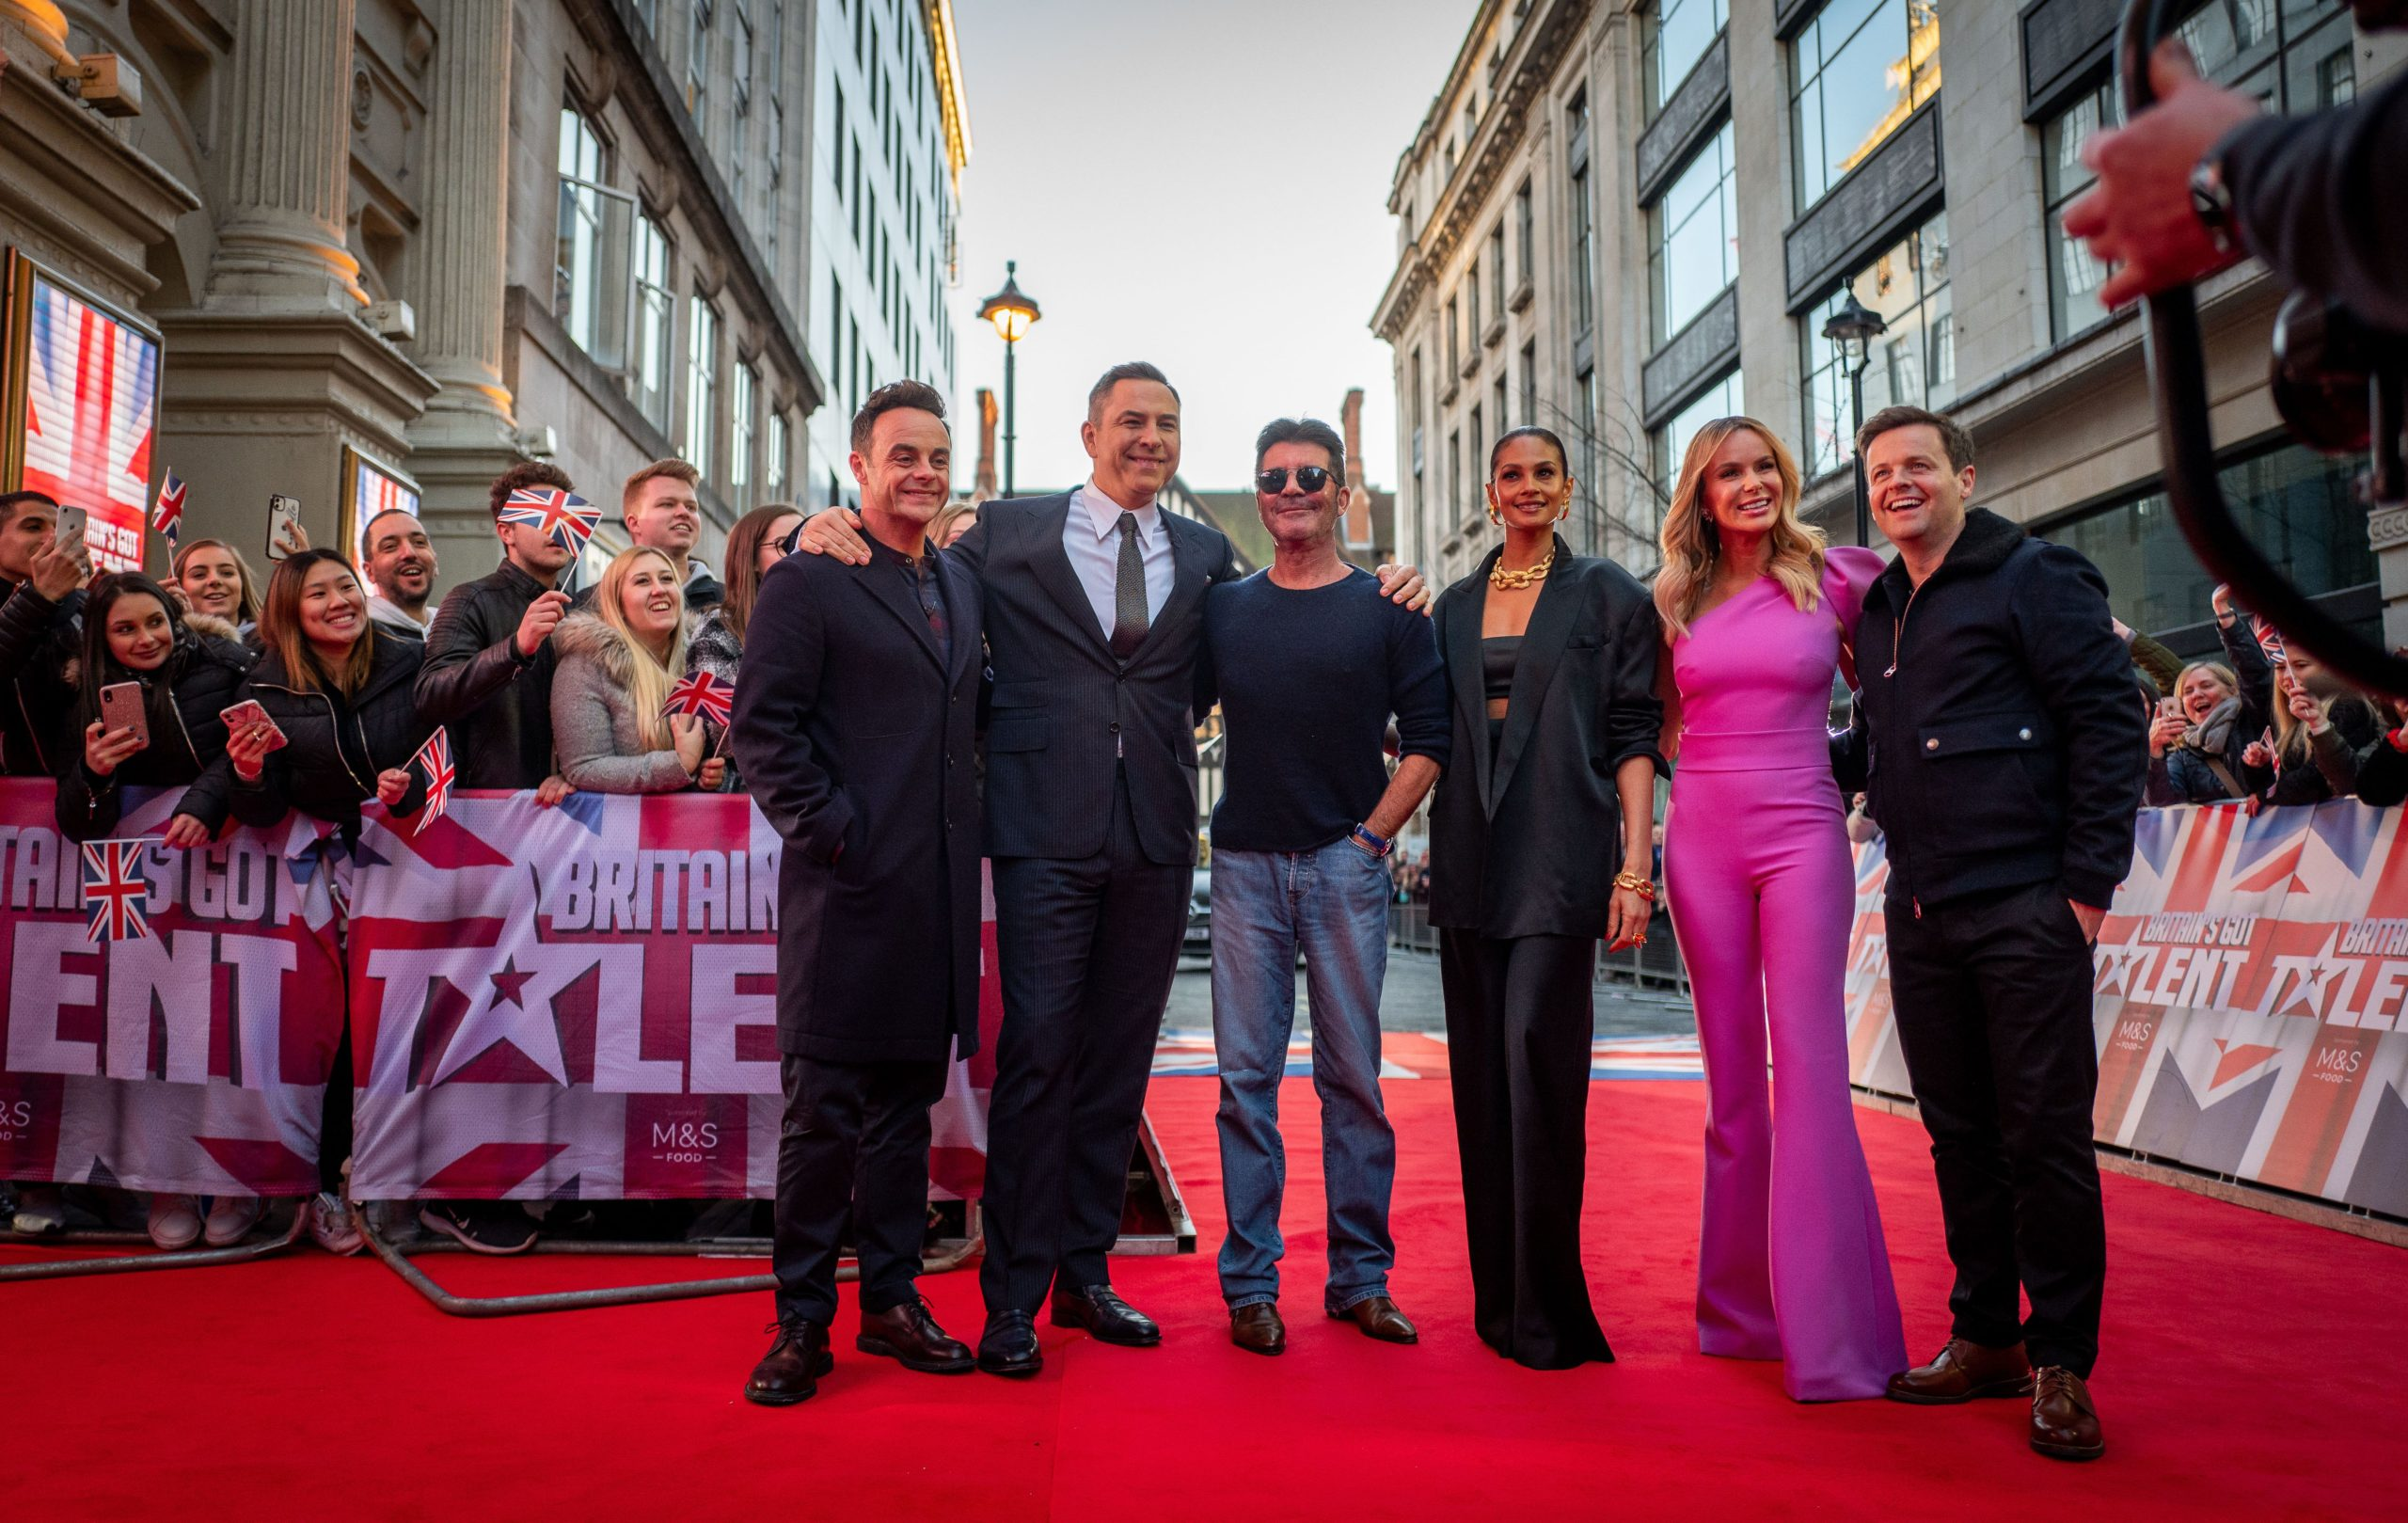 BGT viewers claim to know who the winner of 2020 is before the final!